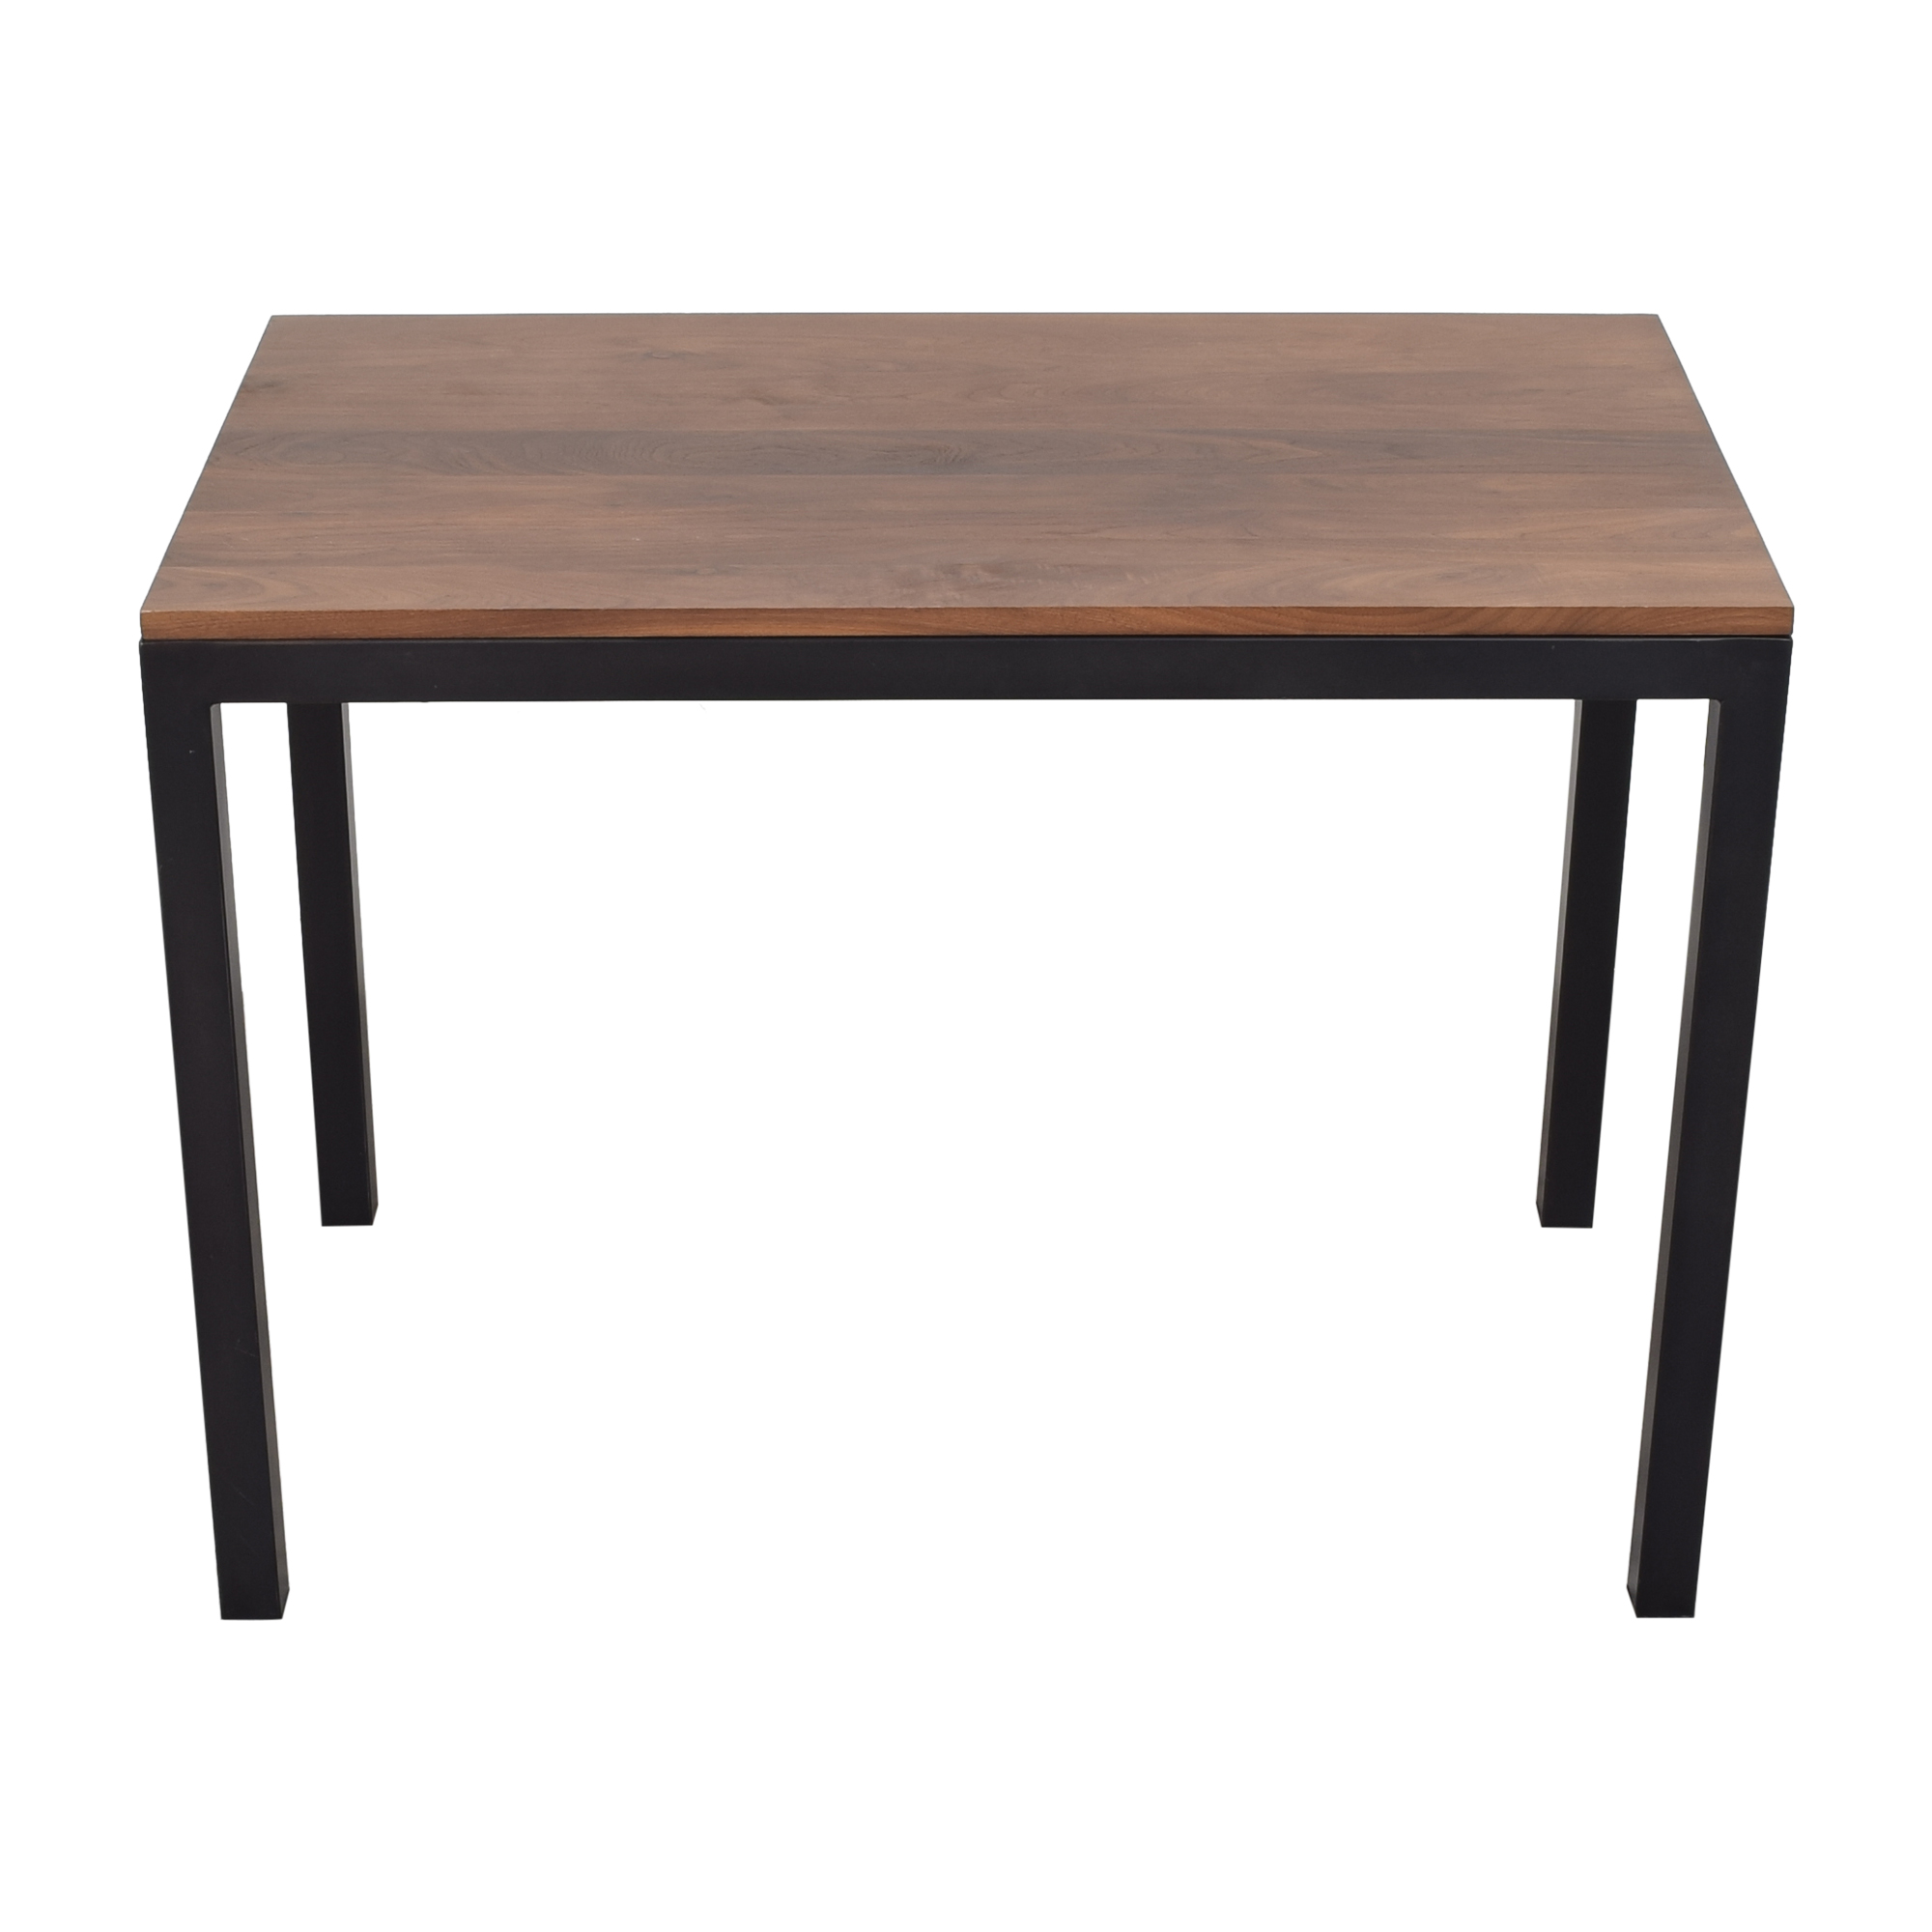 shop Crate & Barrel Custom Parsons Table Crate & Barrel